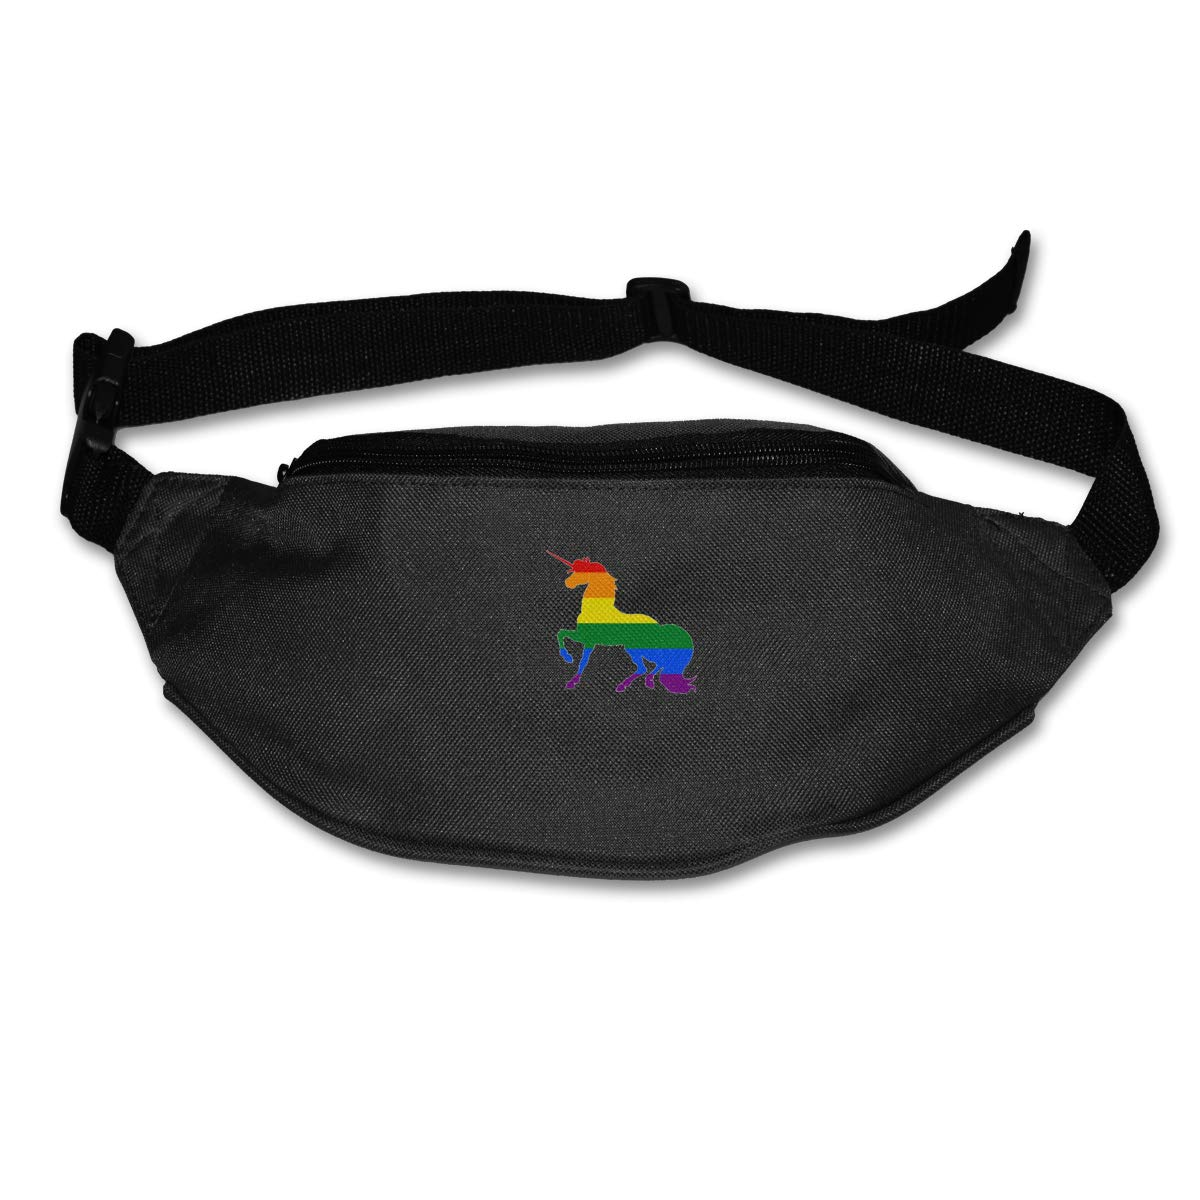 Gay Unicorn Flag Sport Waist Bag Fanny Pack Adjustable For Travel